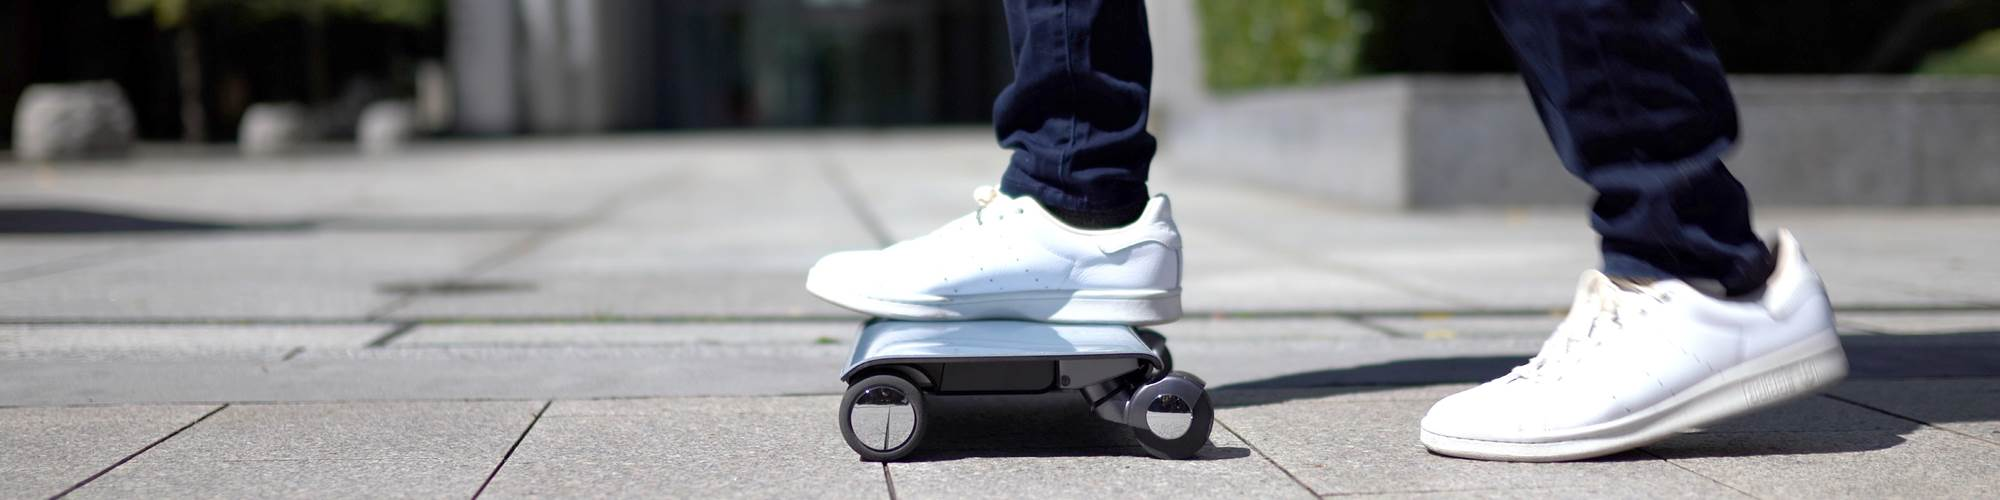 thermoplastic carbon fiber personal mover walkcar